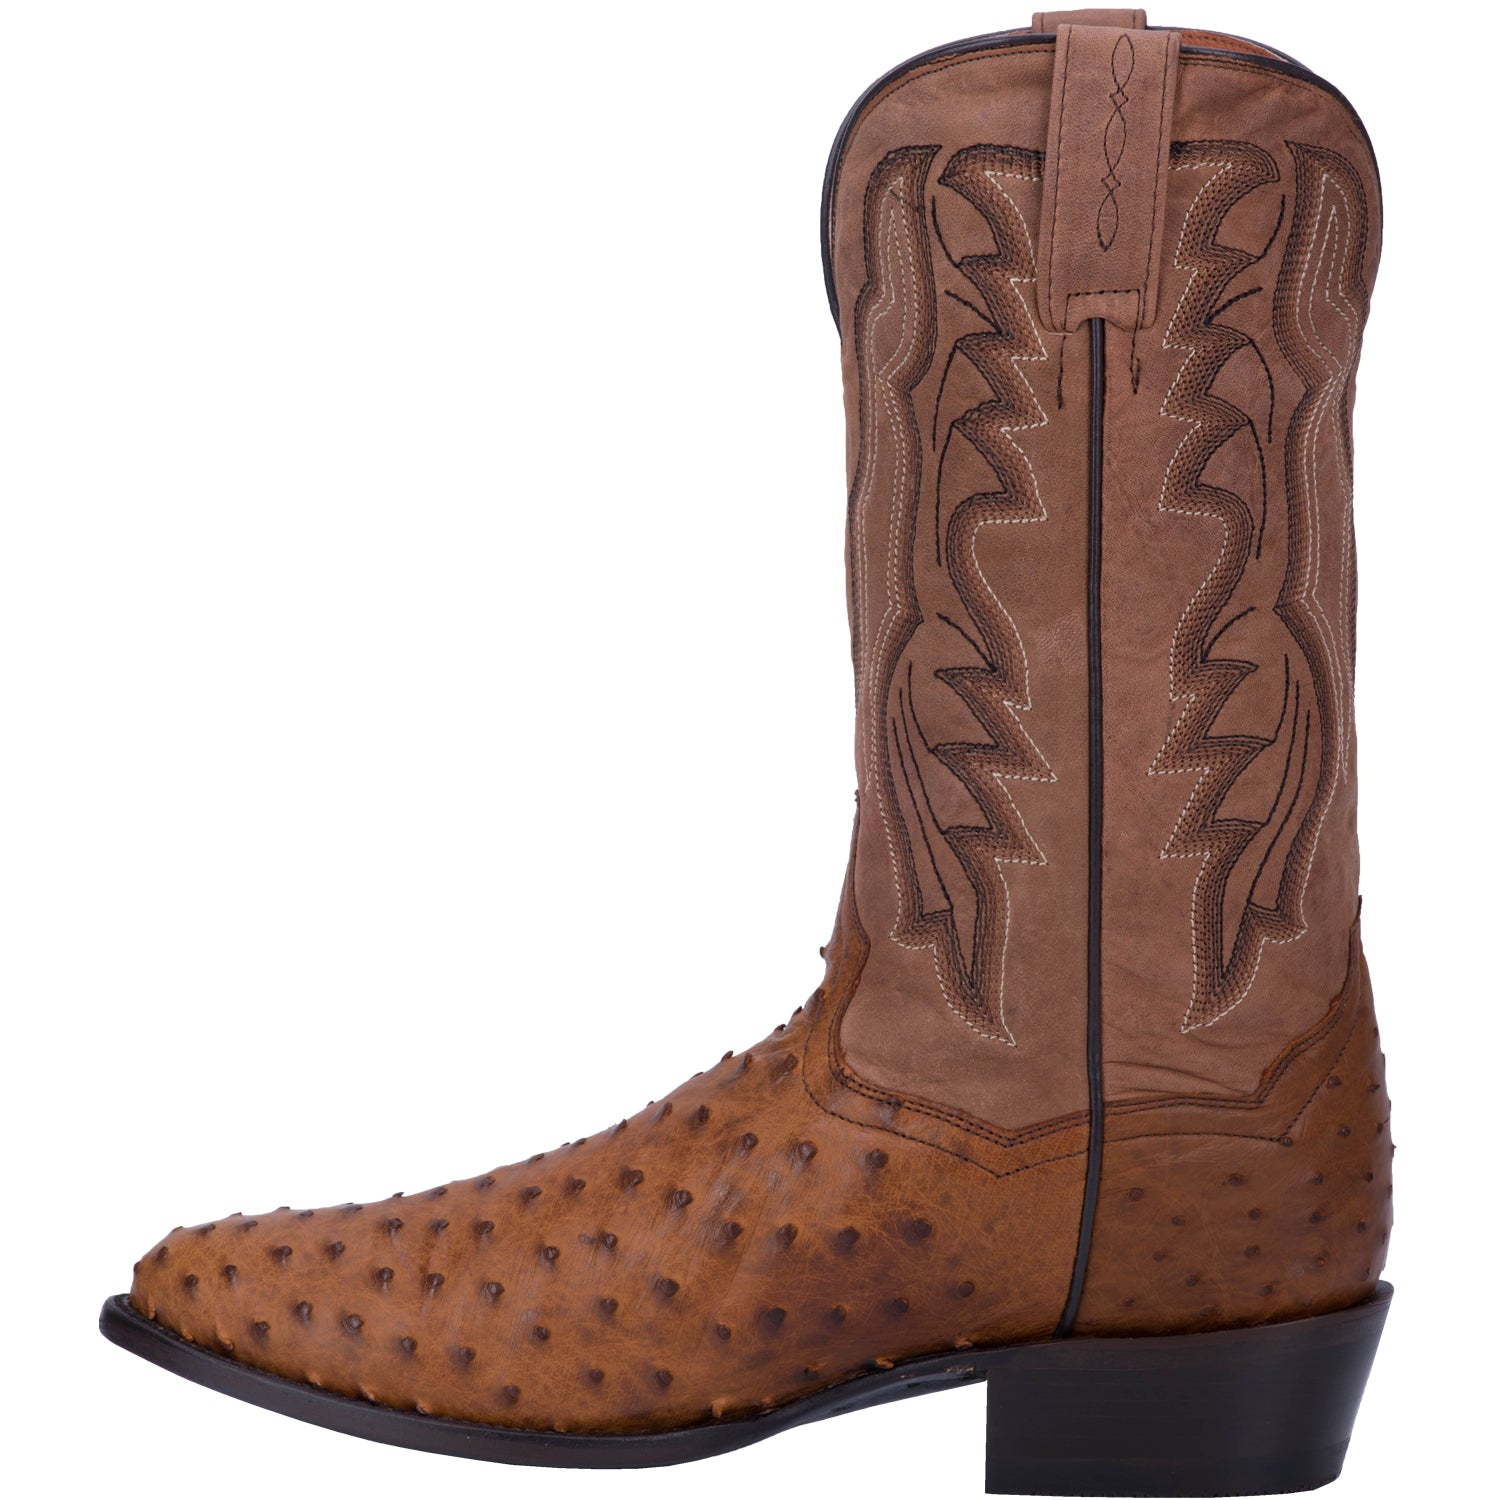 TEMPE FULL QUILL OSTRICH BOOT 28042068230186